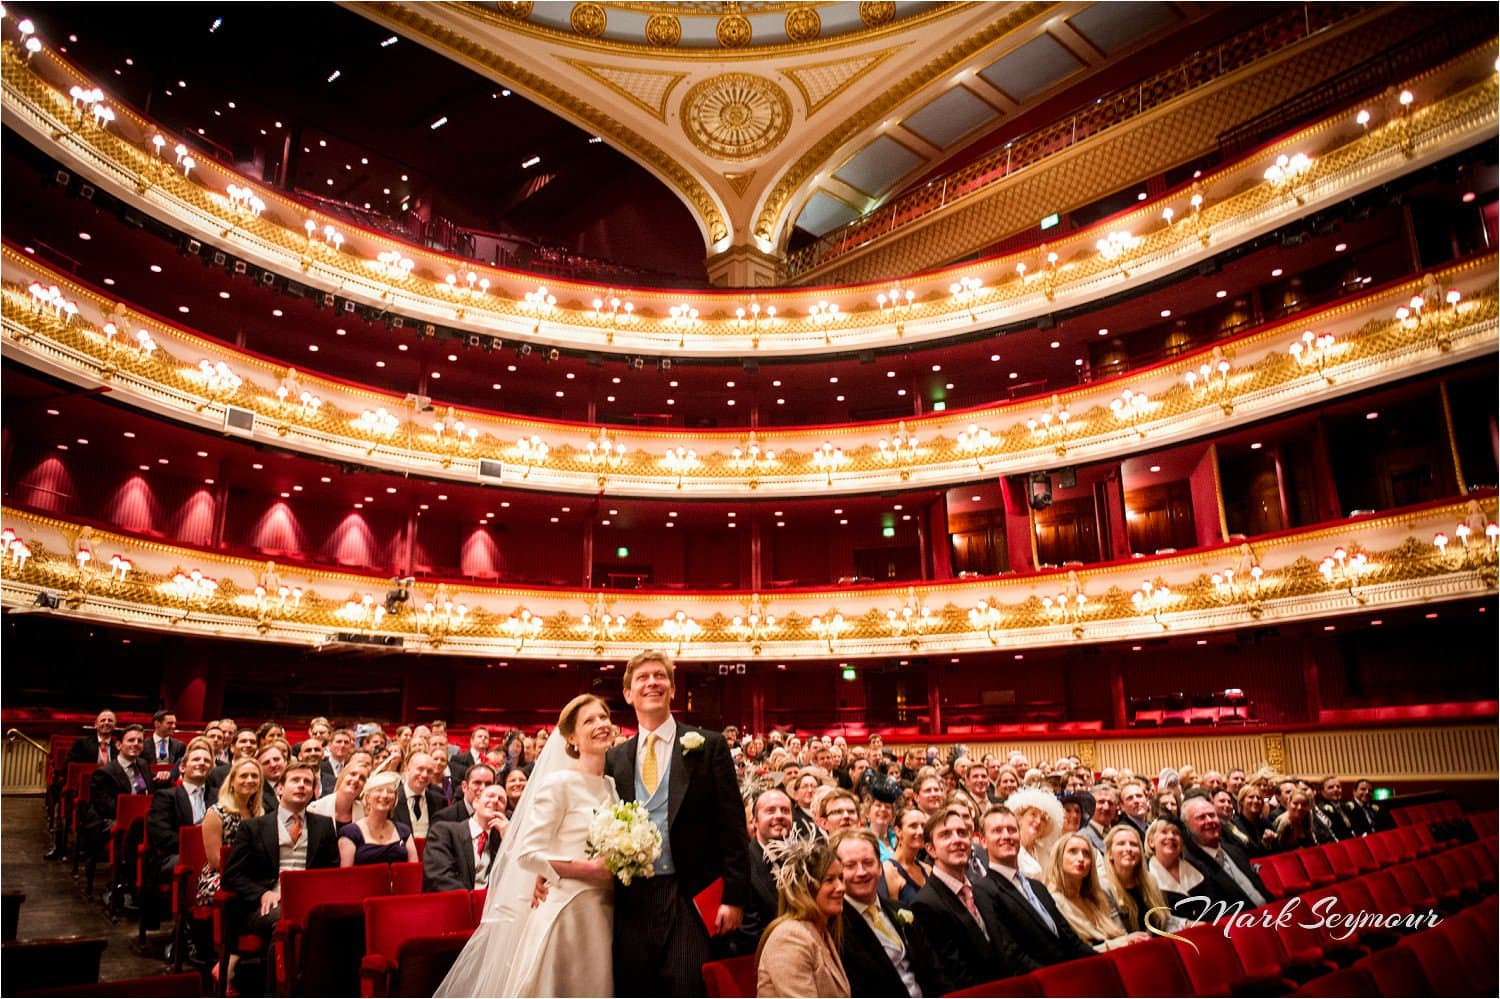 The Royal Opera House wedding